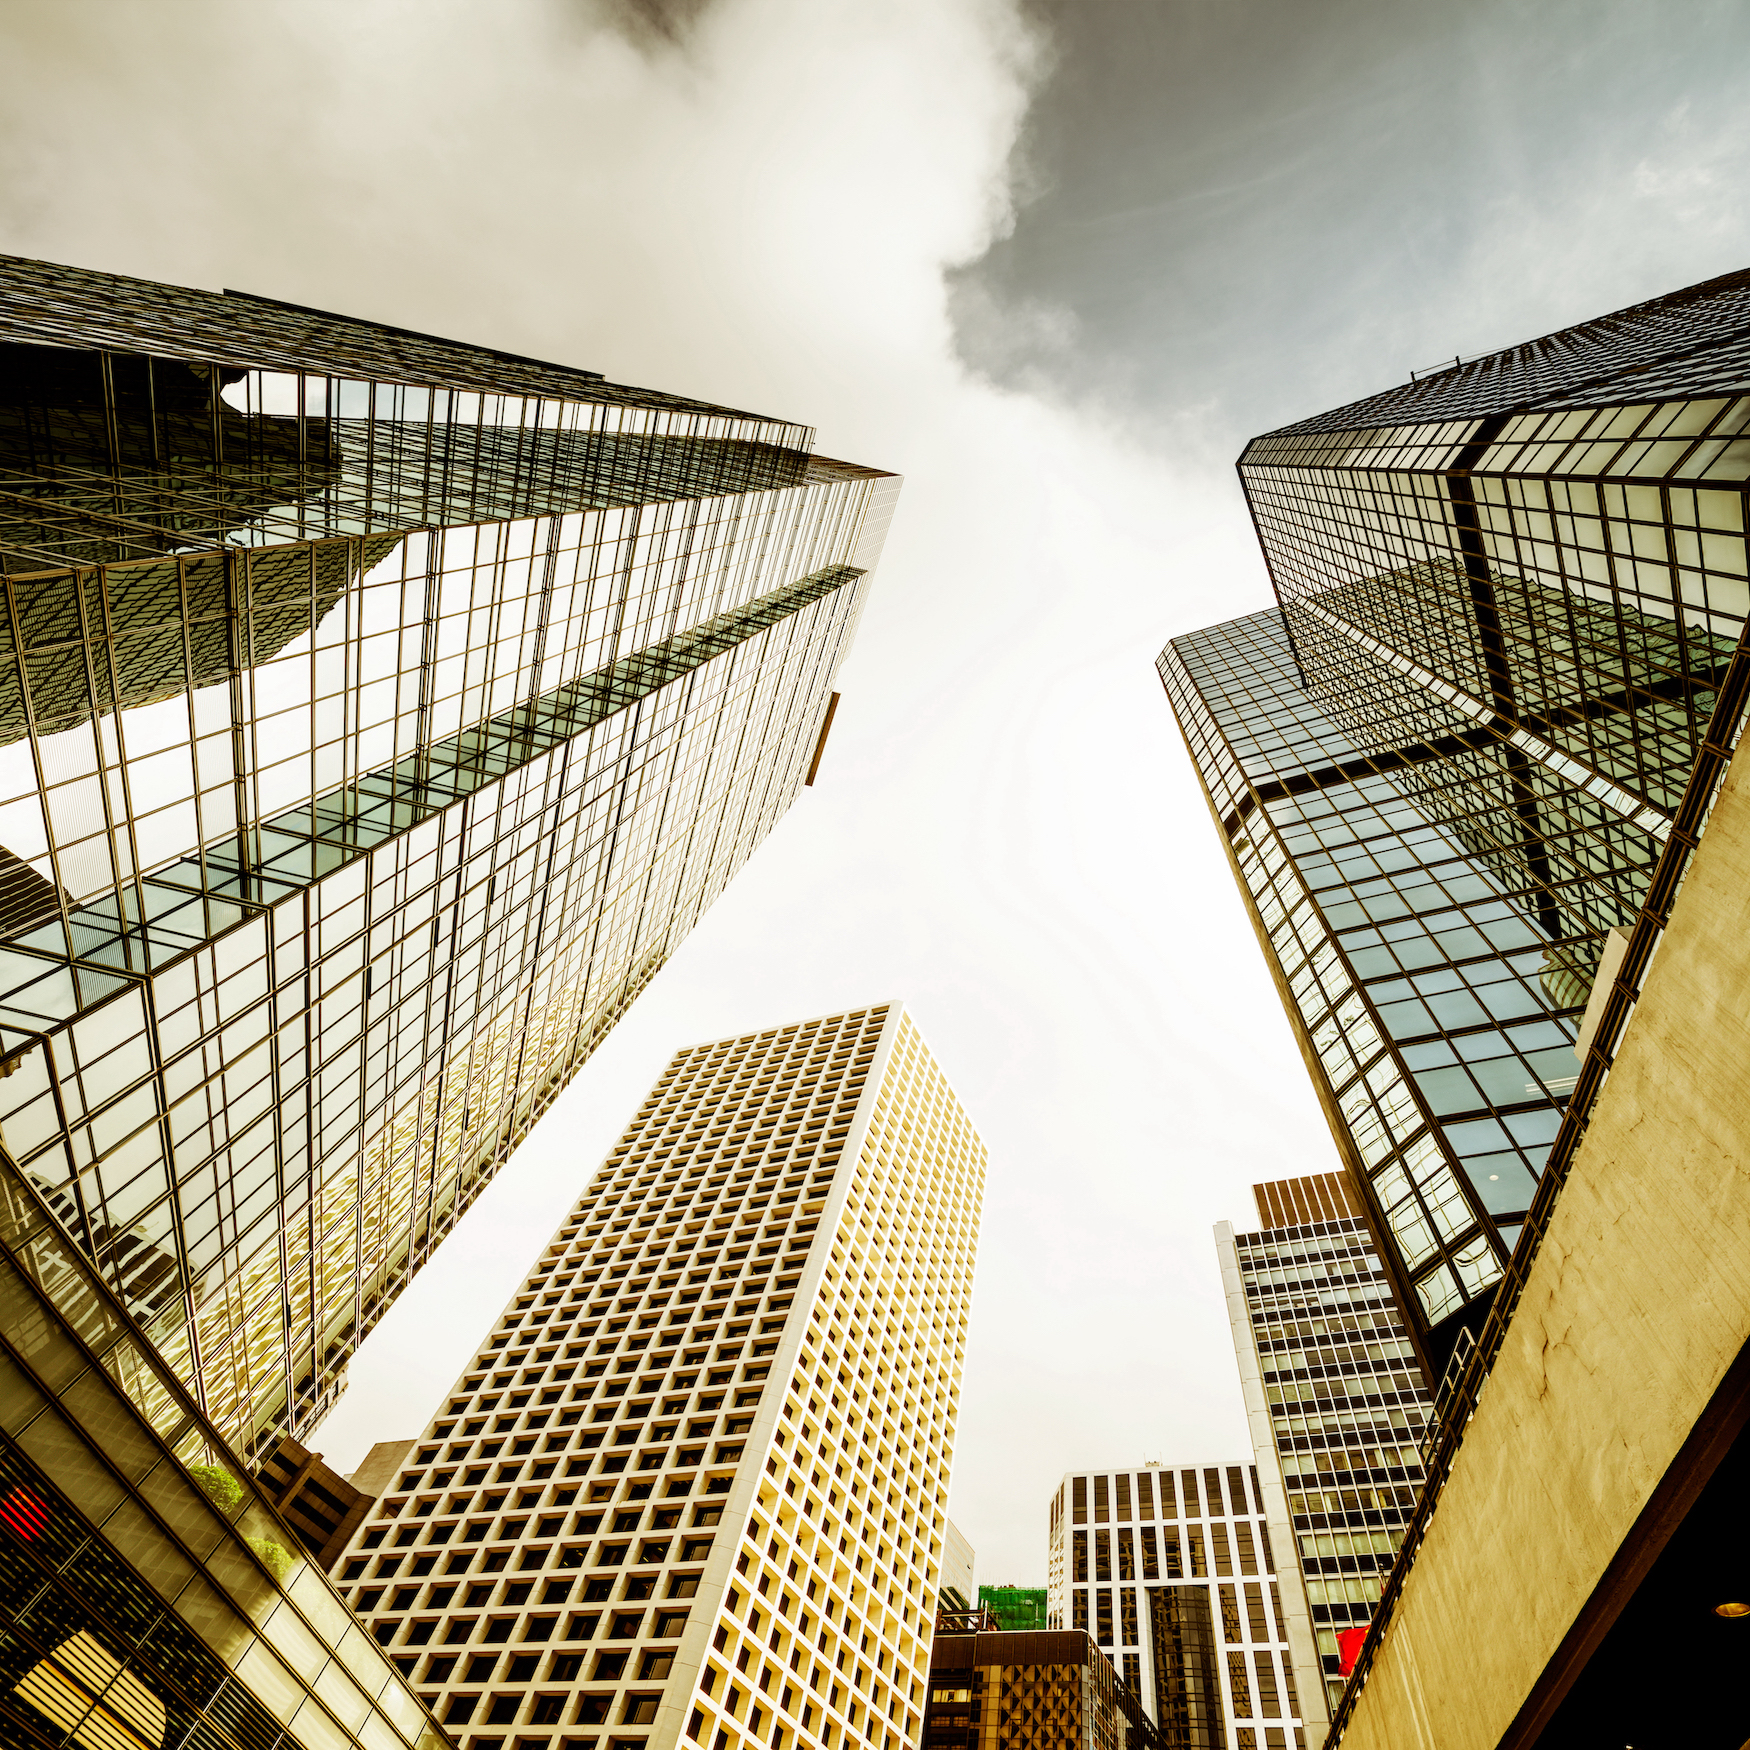 5 lessons for SME banking leaders from the experts transforming the industry